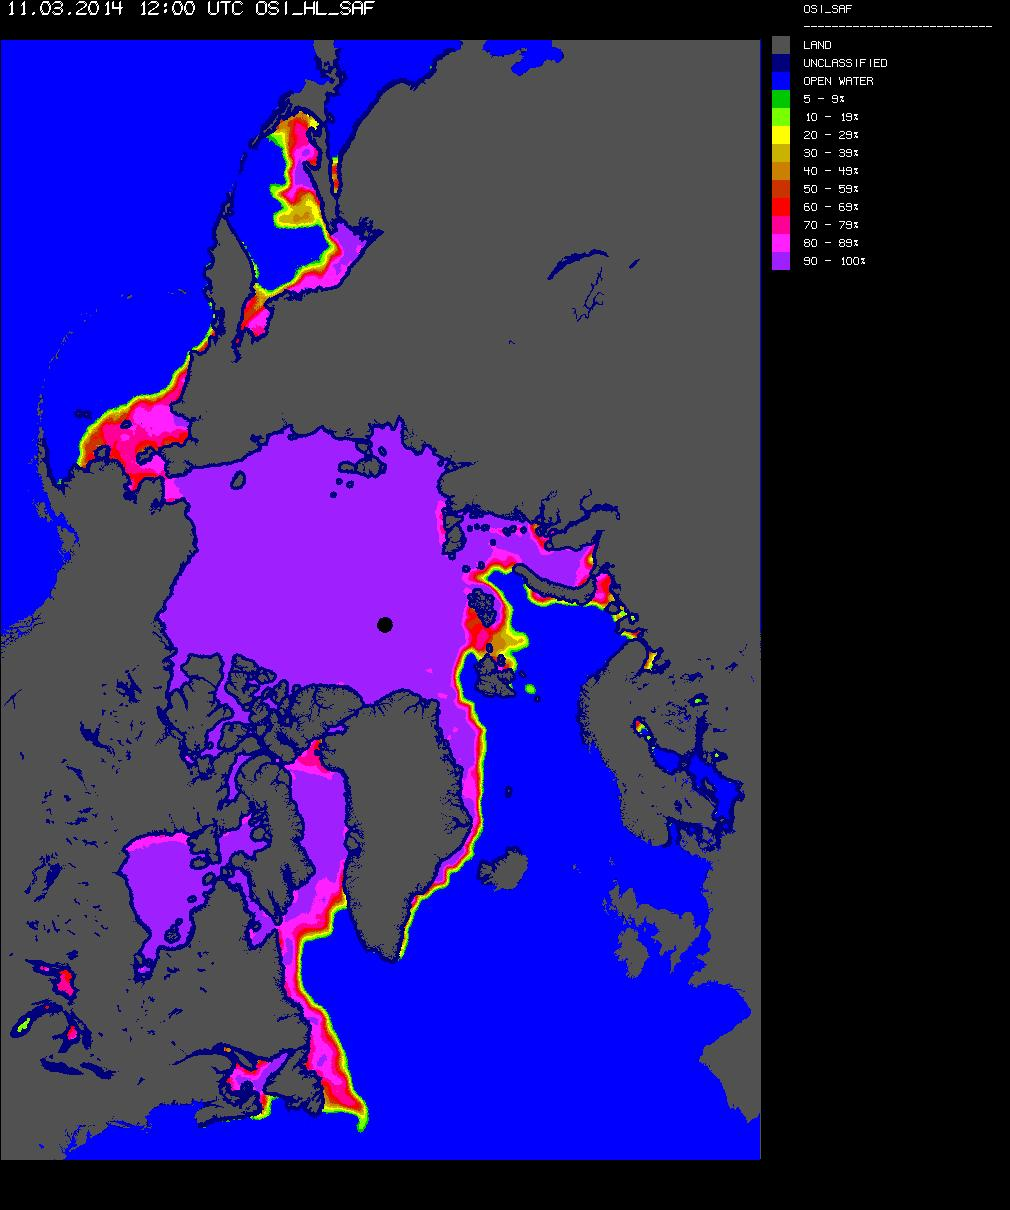 OSI Arctic sea ice concentration for March 11th 2014